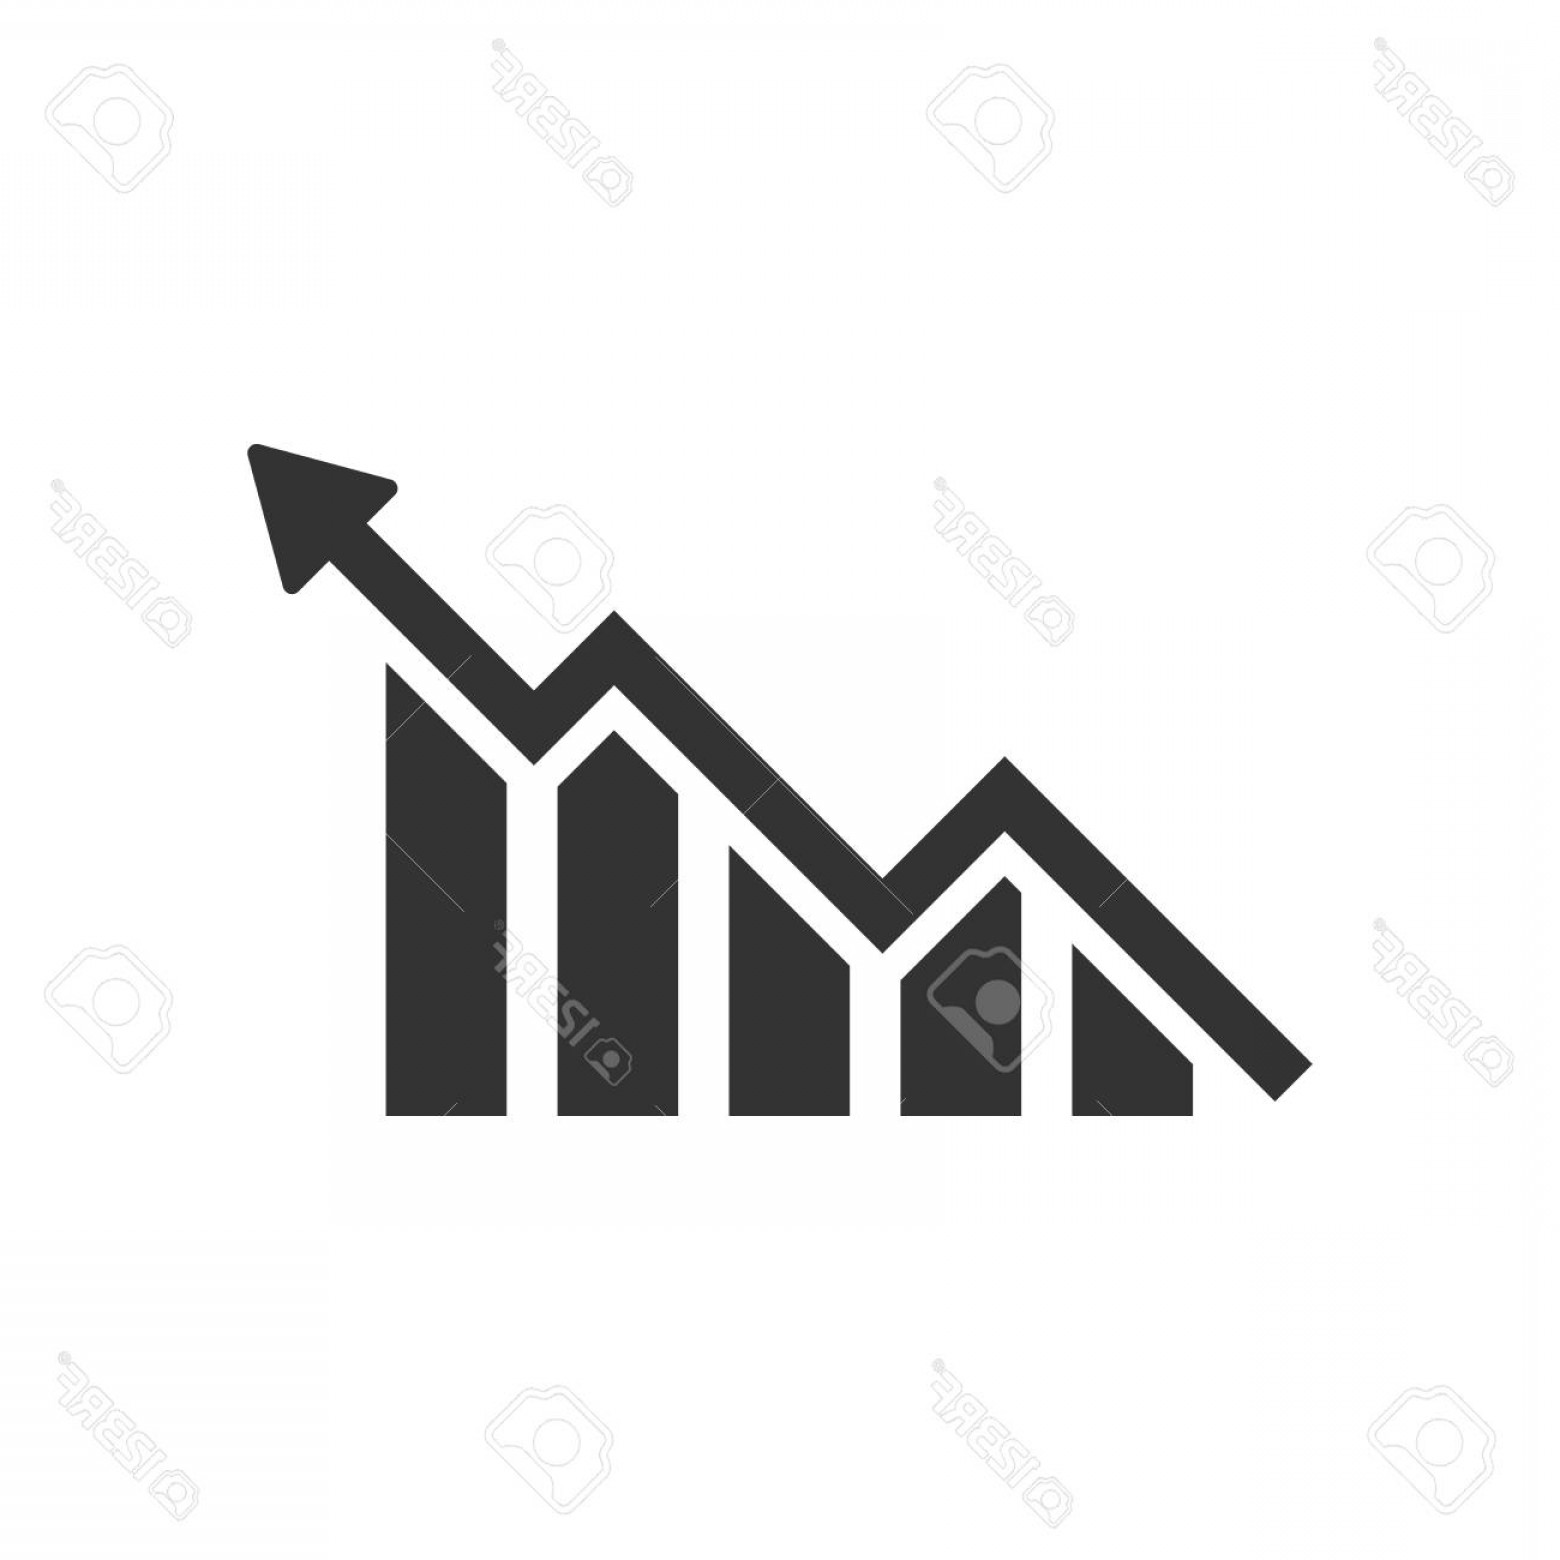 Bar Graph Icon Vector: Photostock Vector Growing Bar Graph Icon In Flat Style Increase Arrow Vector Illustration On White Isolated Background